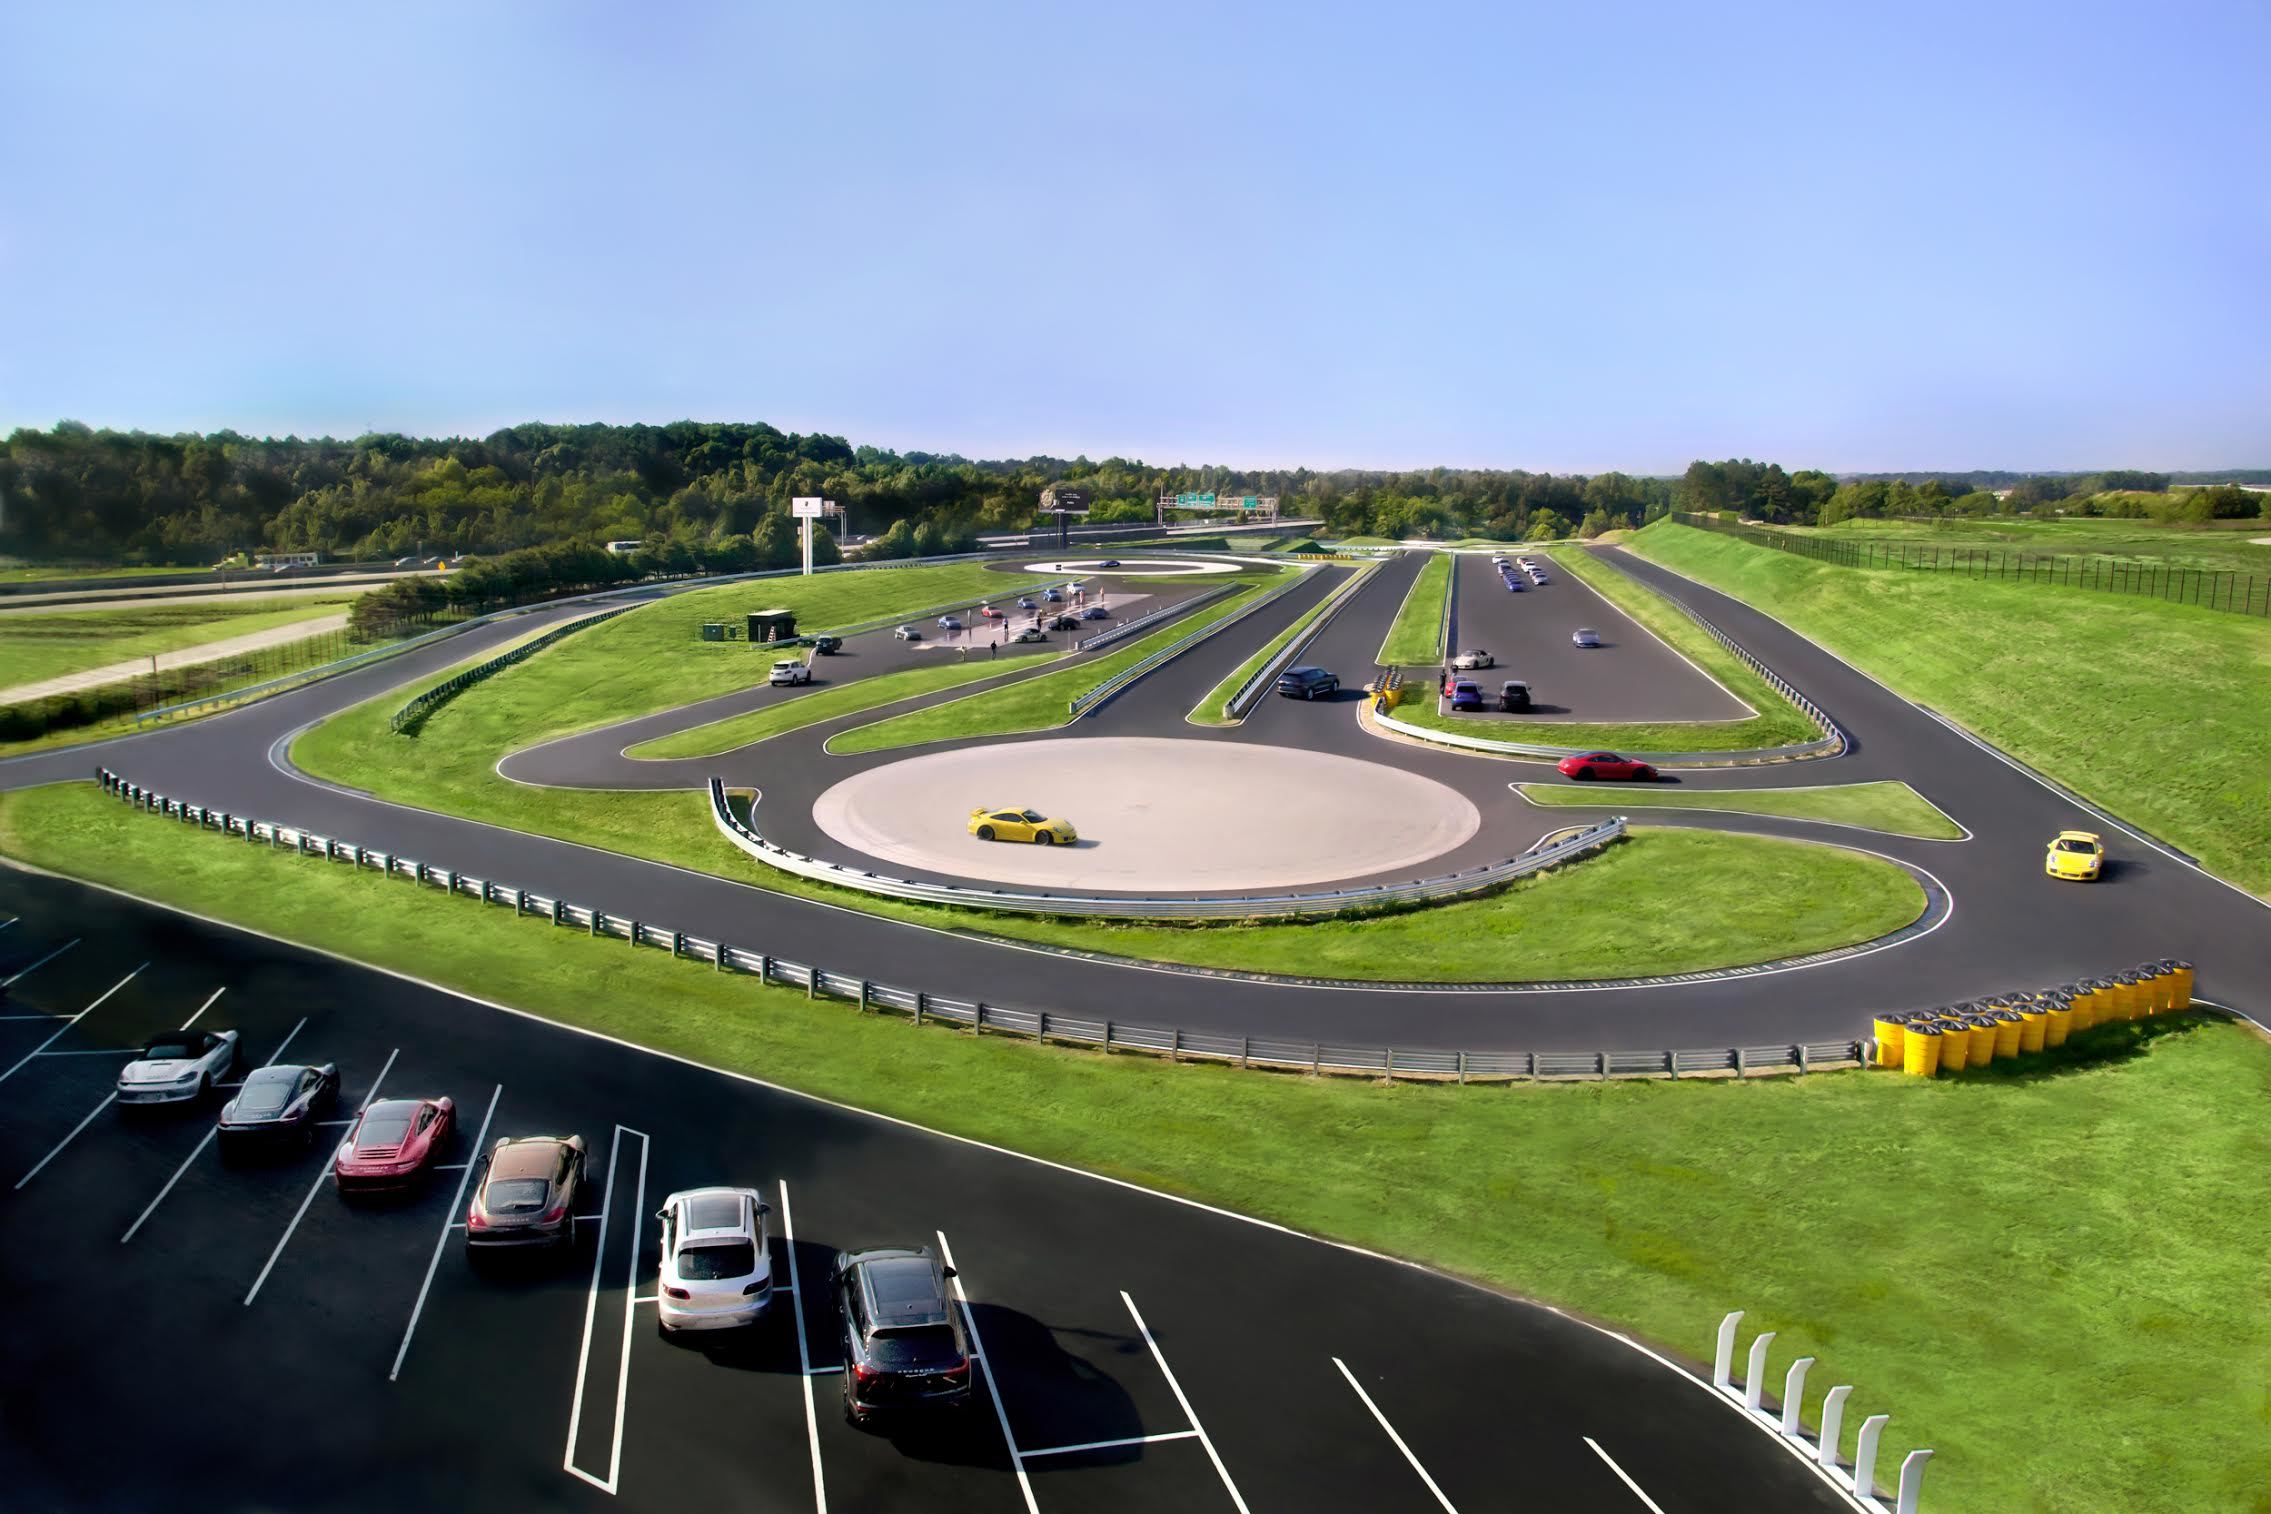 Charitybuzz Driving Experience For 2 At One Porsche Drive In